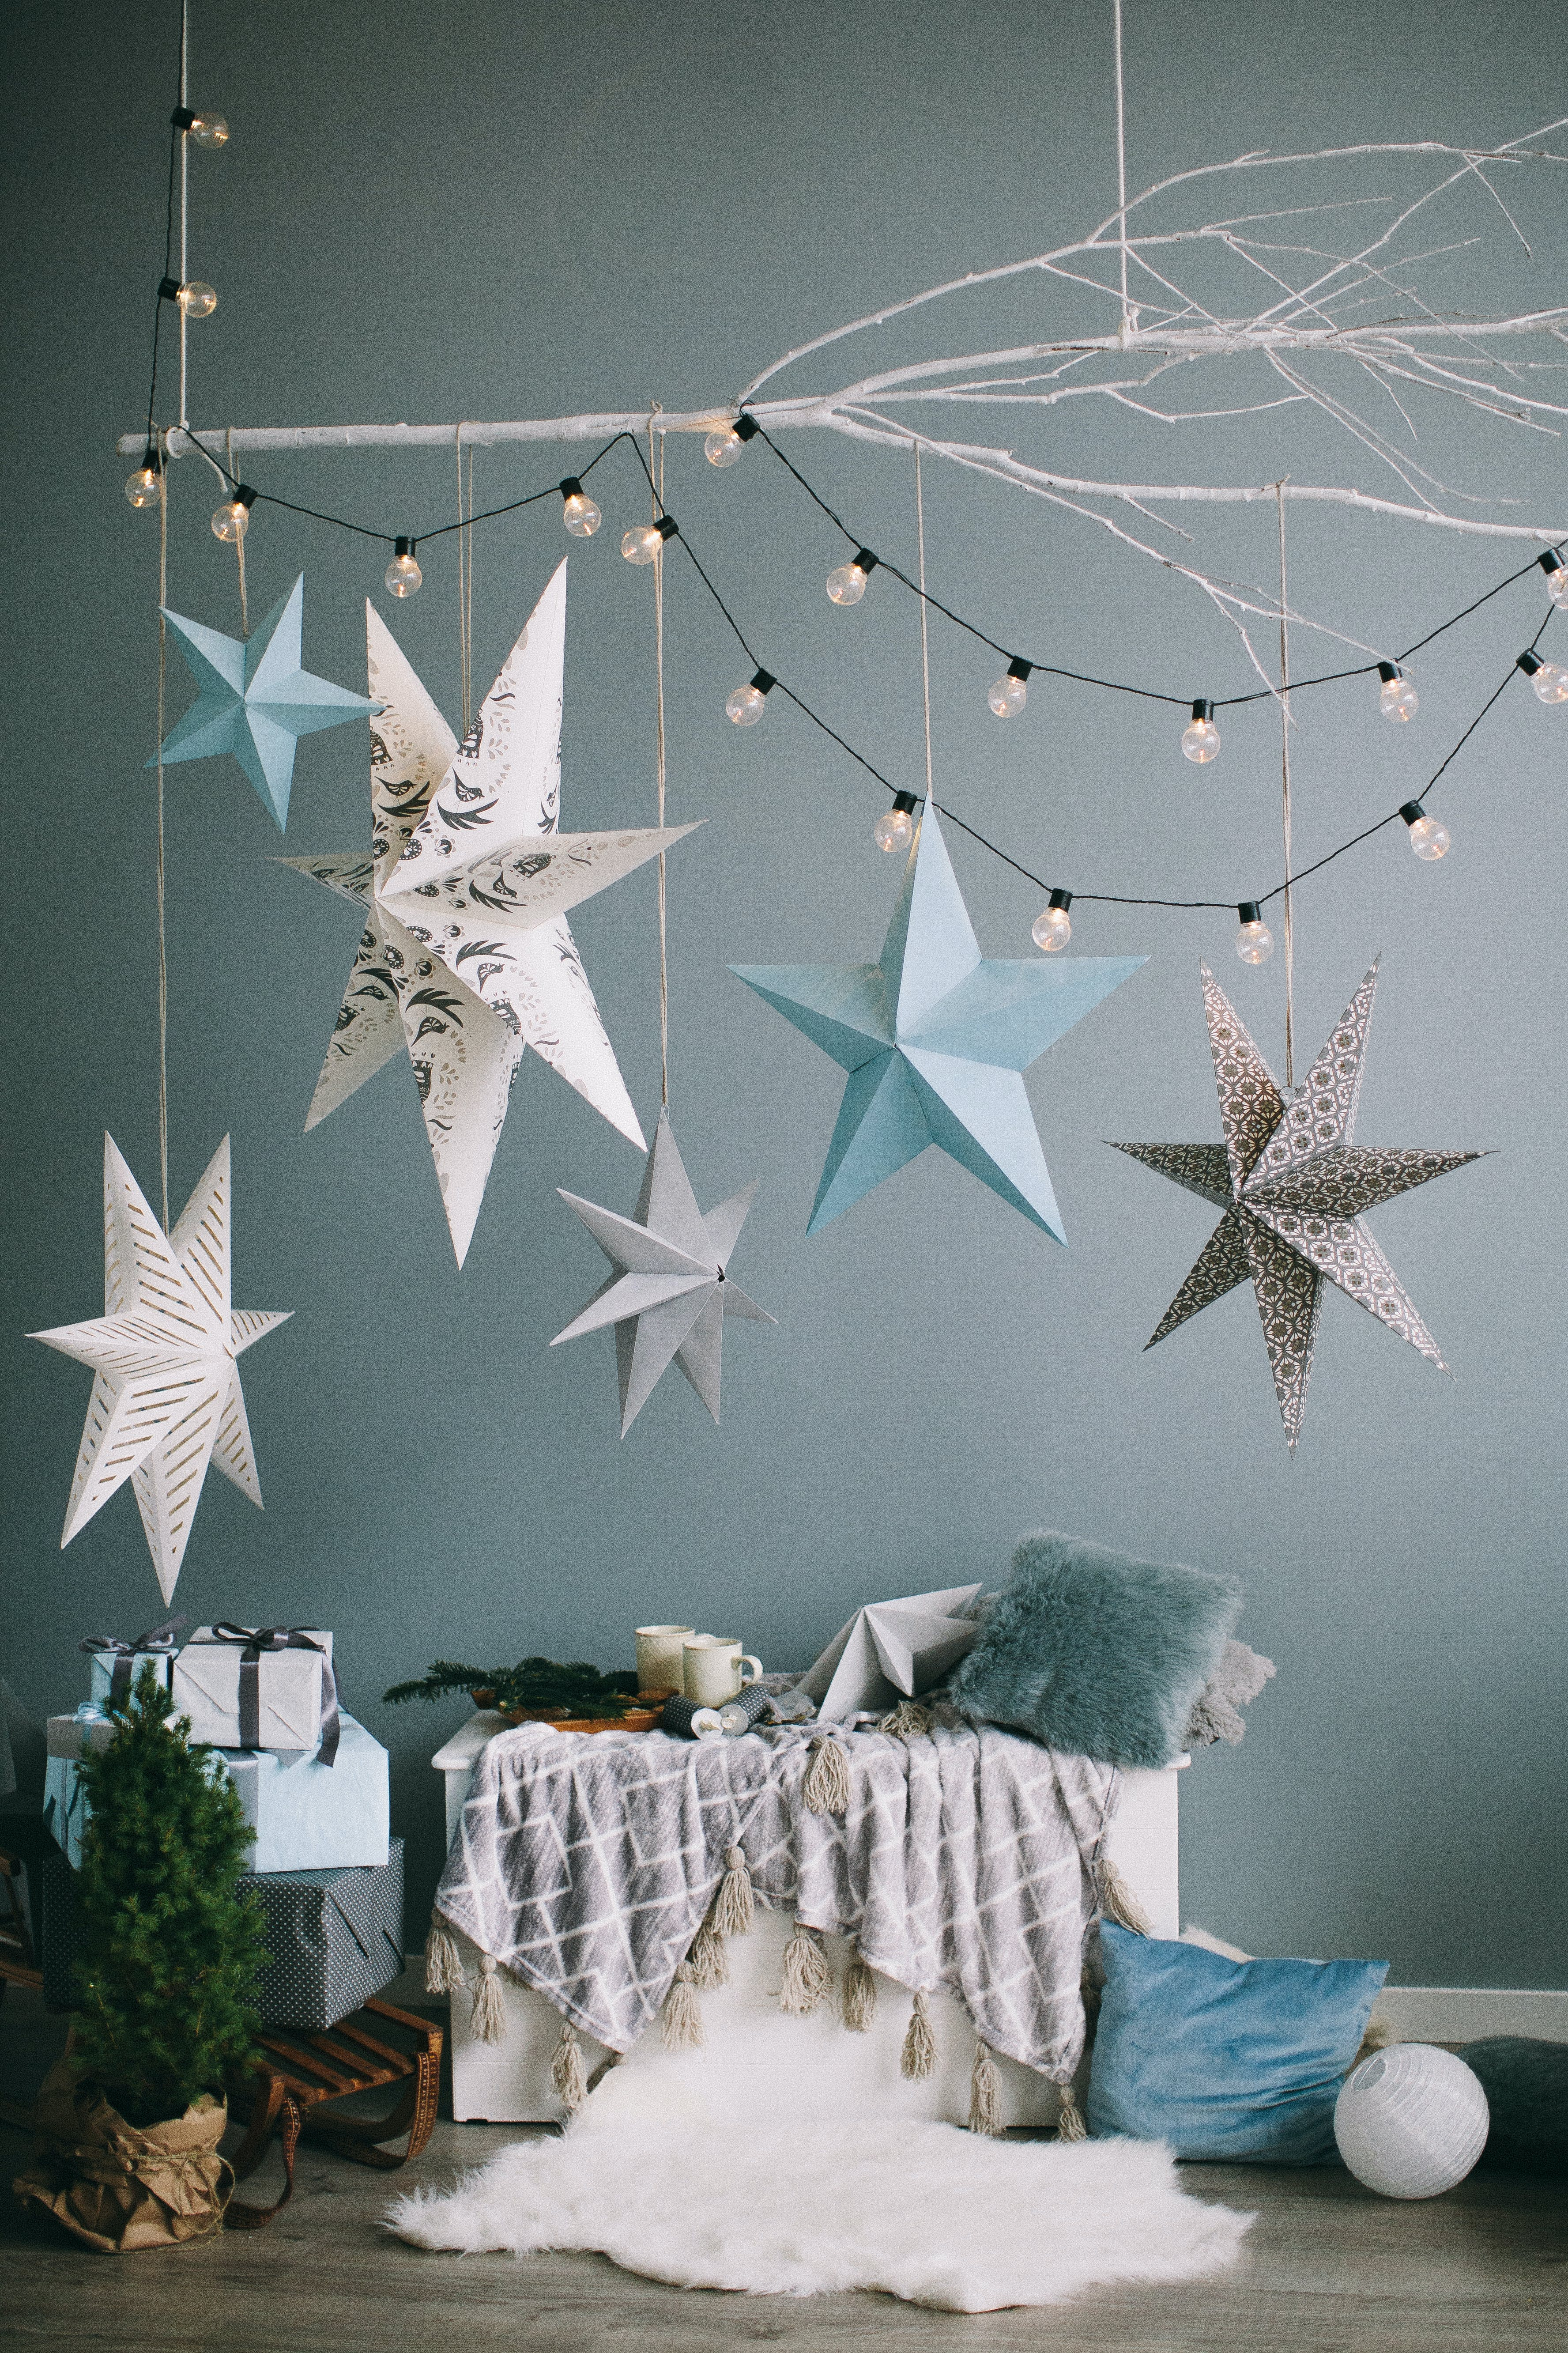 Blue, White, and Gray Hanging Star Decor